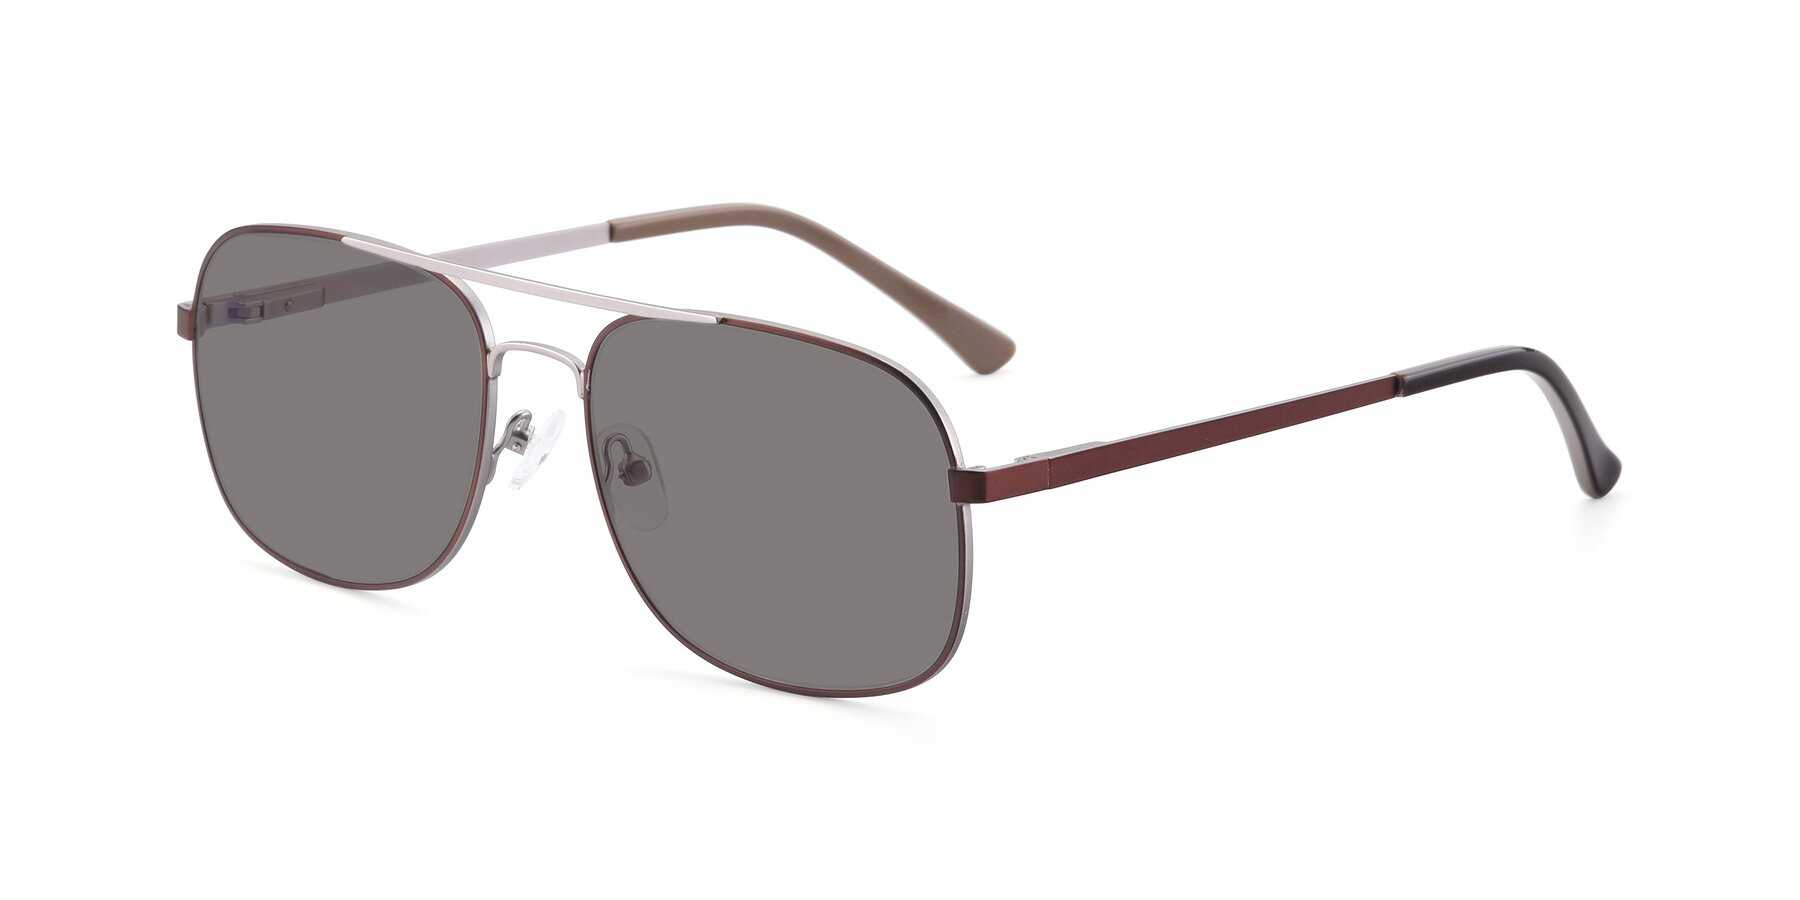 Angle of 9487 in Brown-Silver with Medium Gray Tinted Lenses